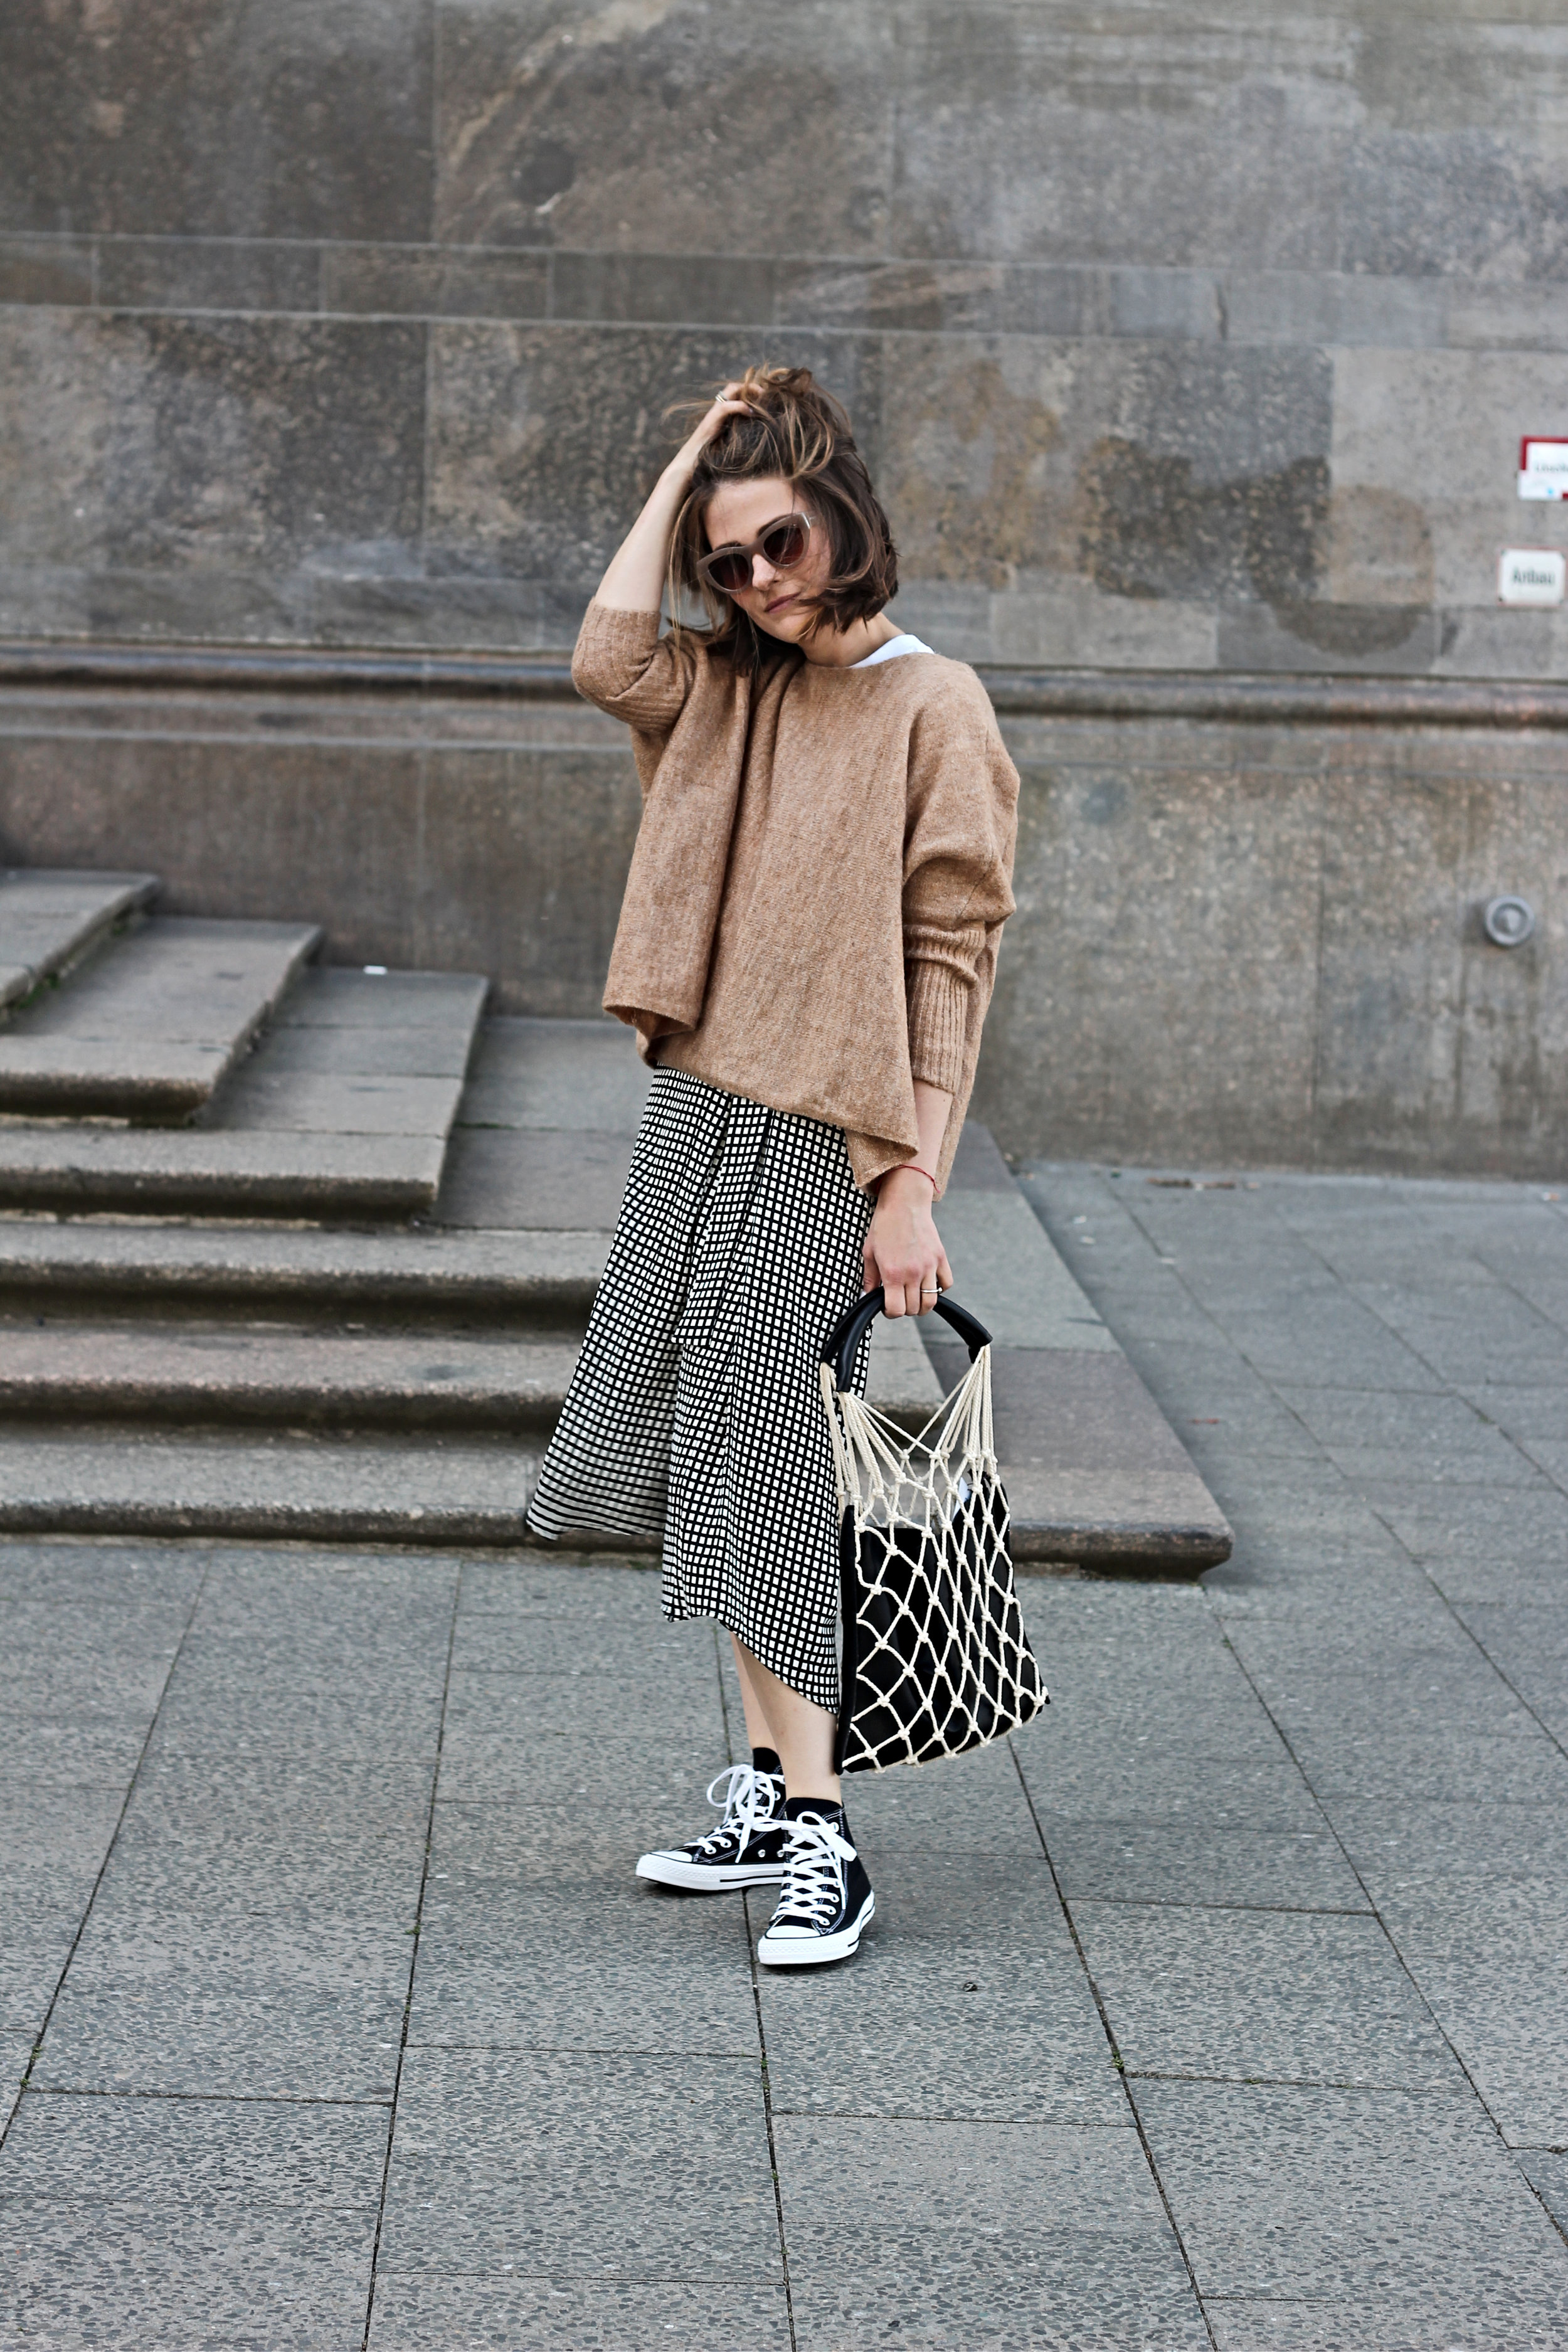 annaporter-fishnet-bag-converse-high-sneakers-camel-pullover-komono-1